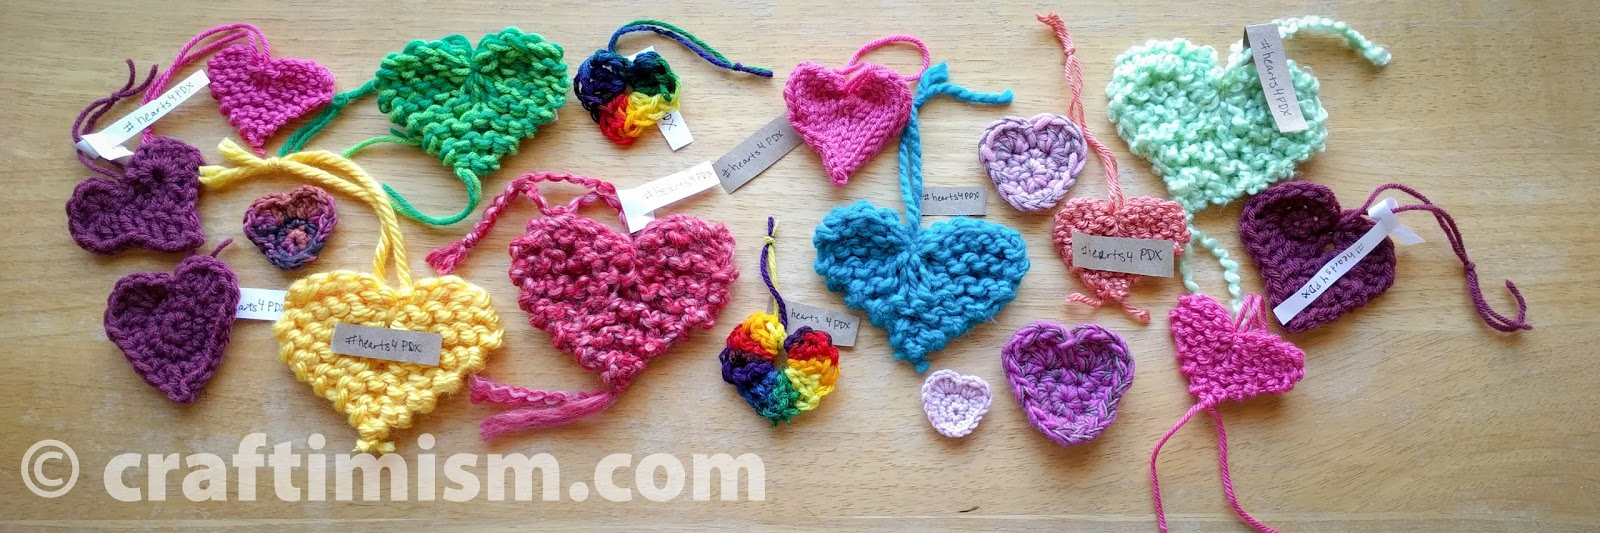 Craftimism: Simple Knit and Crochet Heart patterns